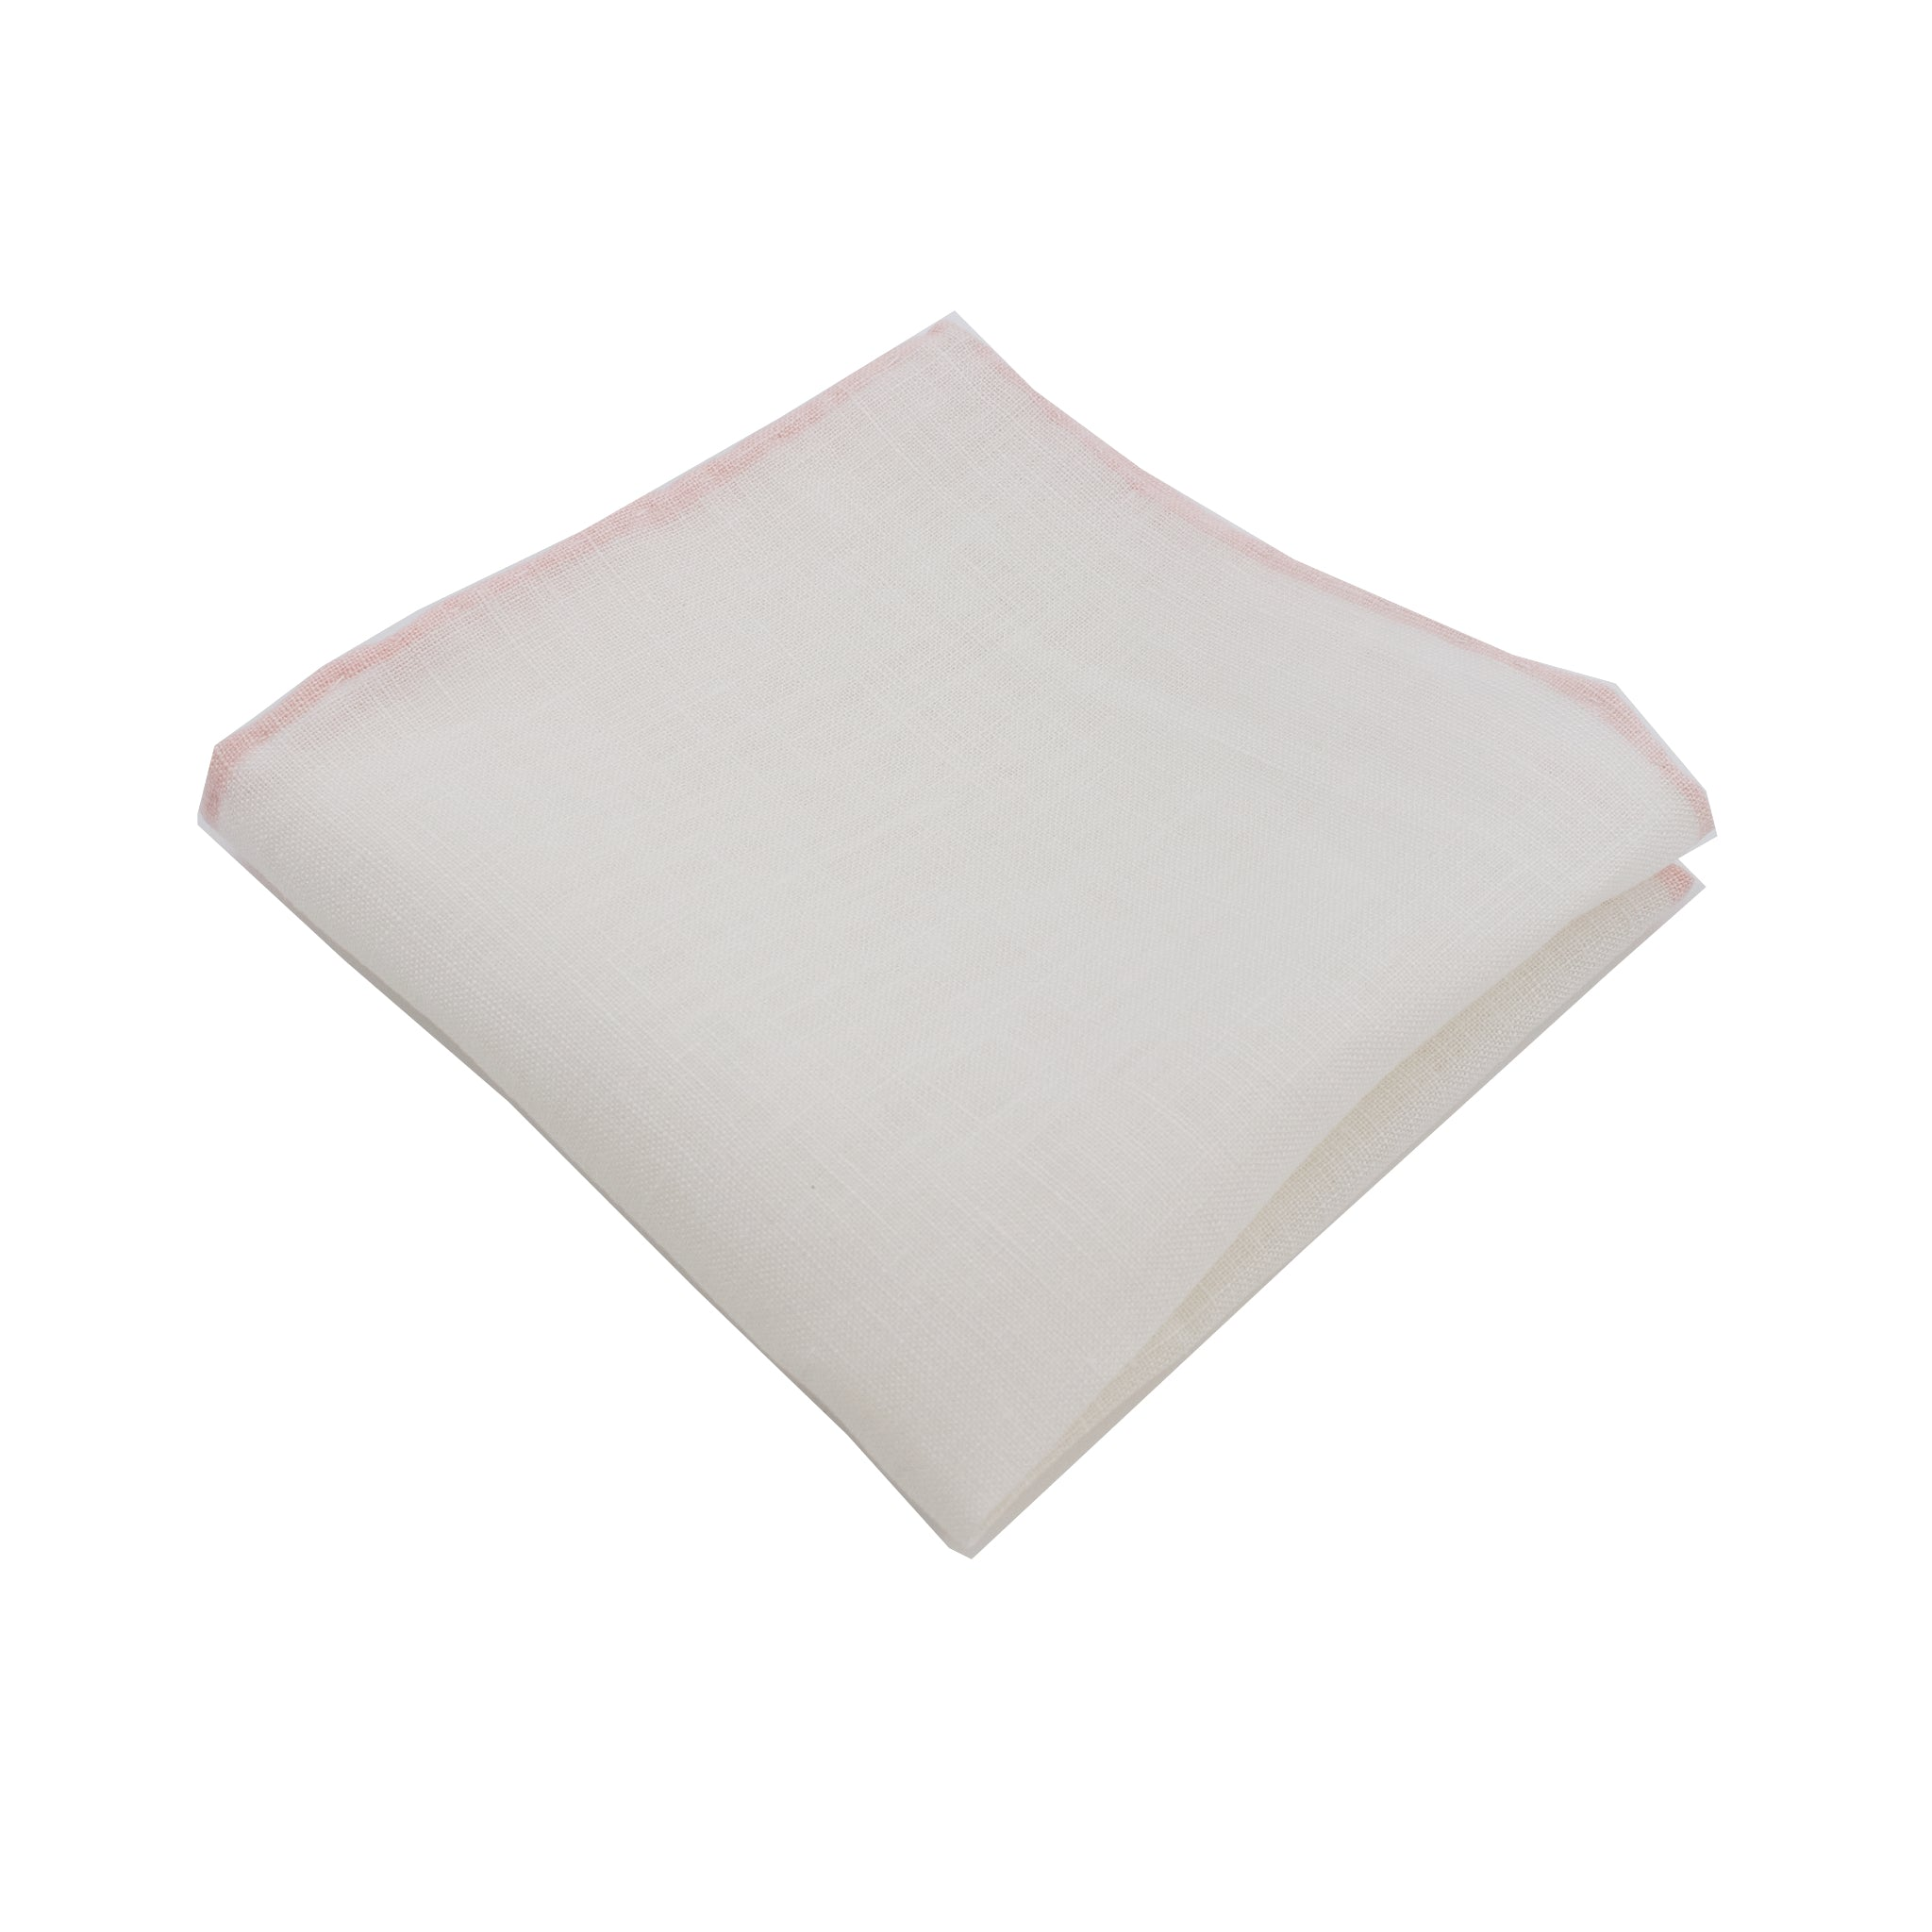 White Linen Pocket Square w/ Blush Trim